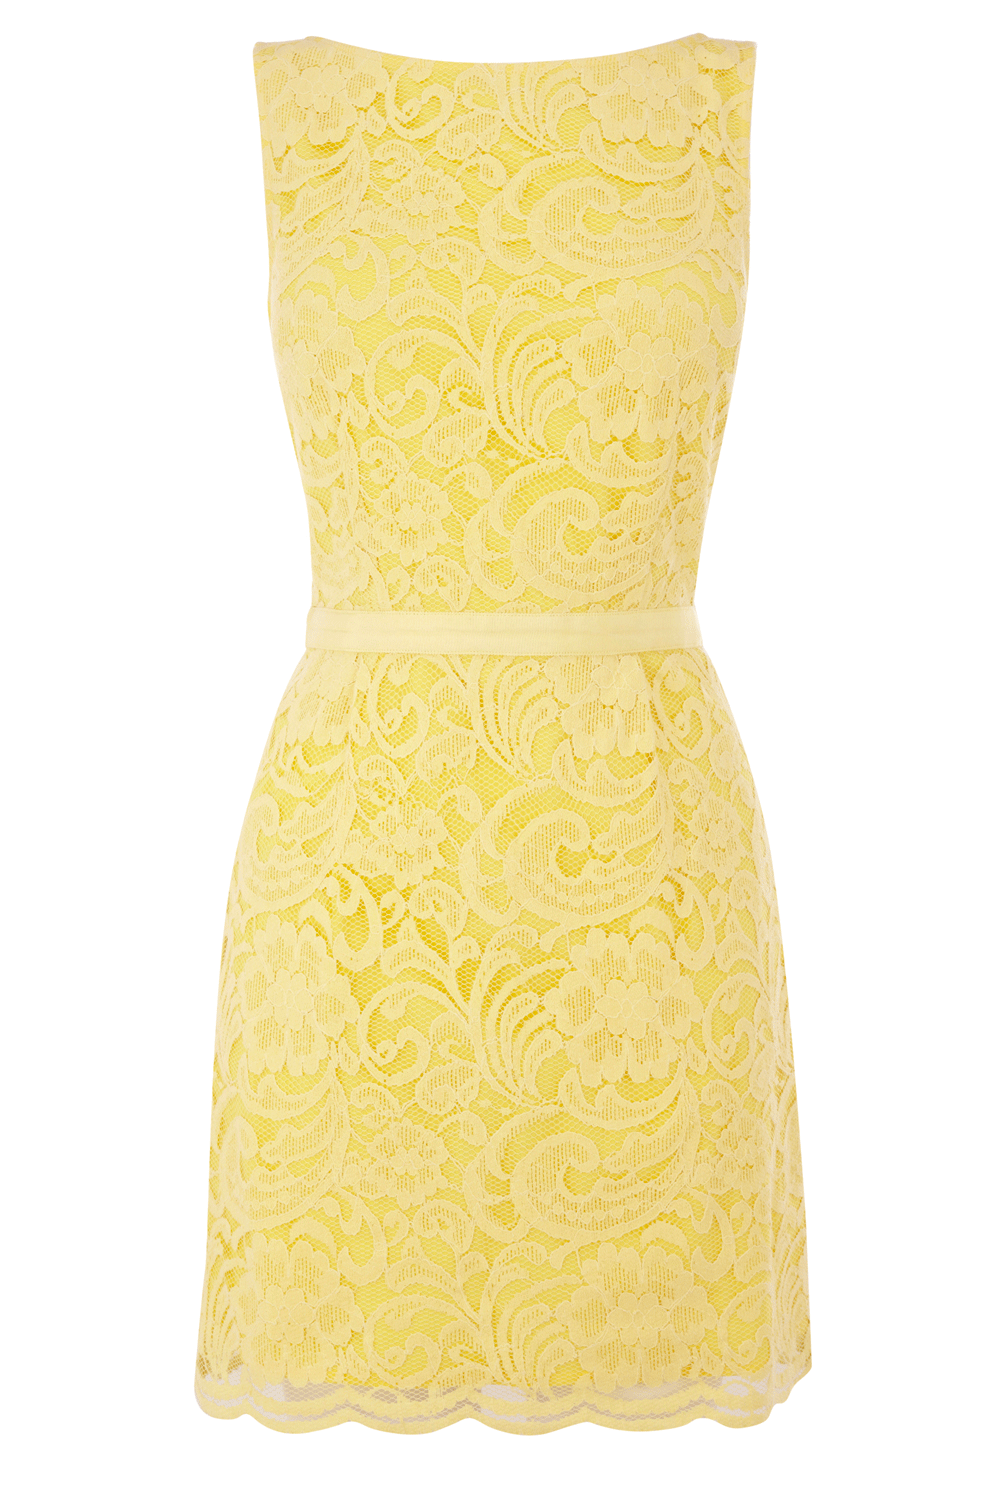 yellow and lace...love